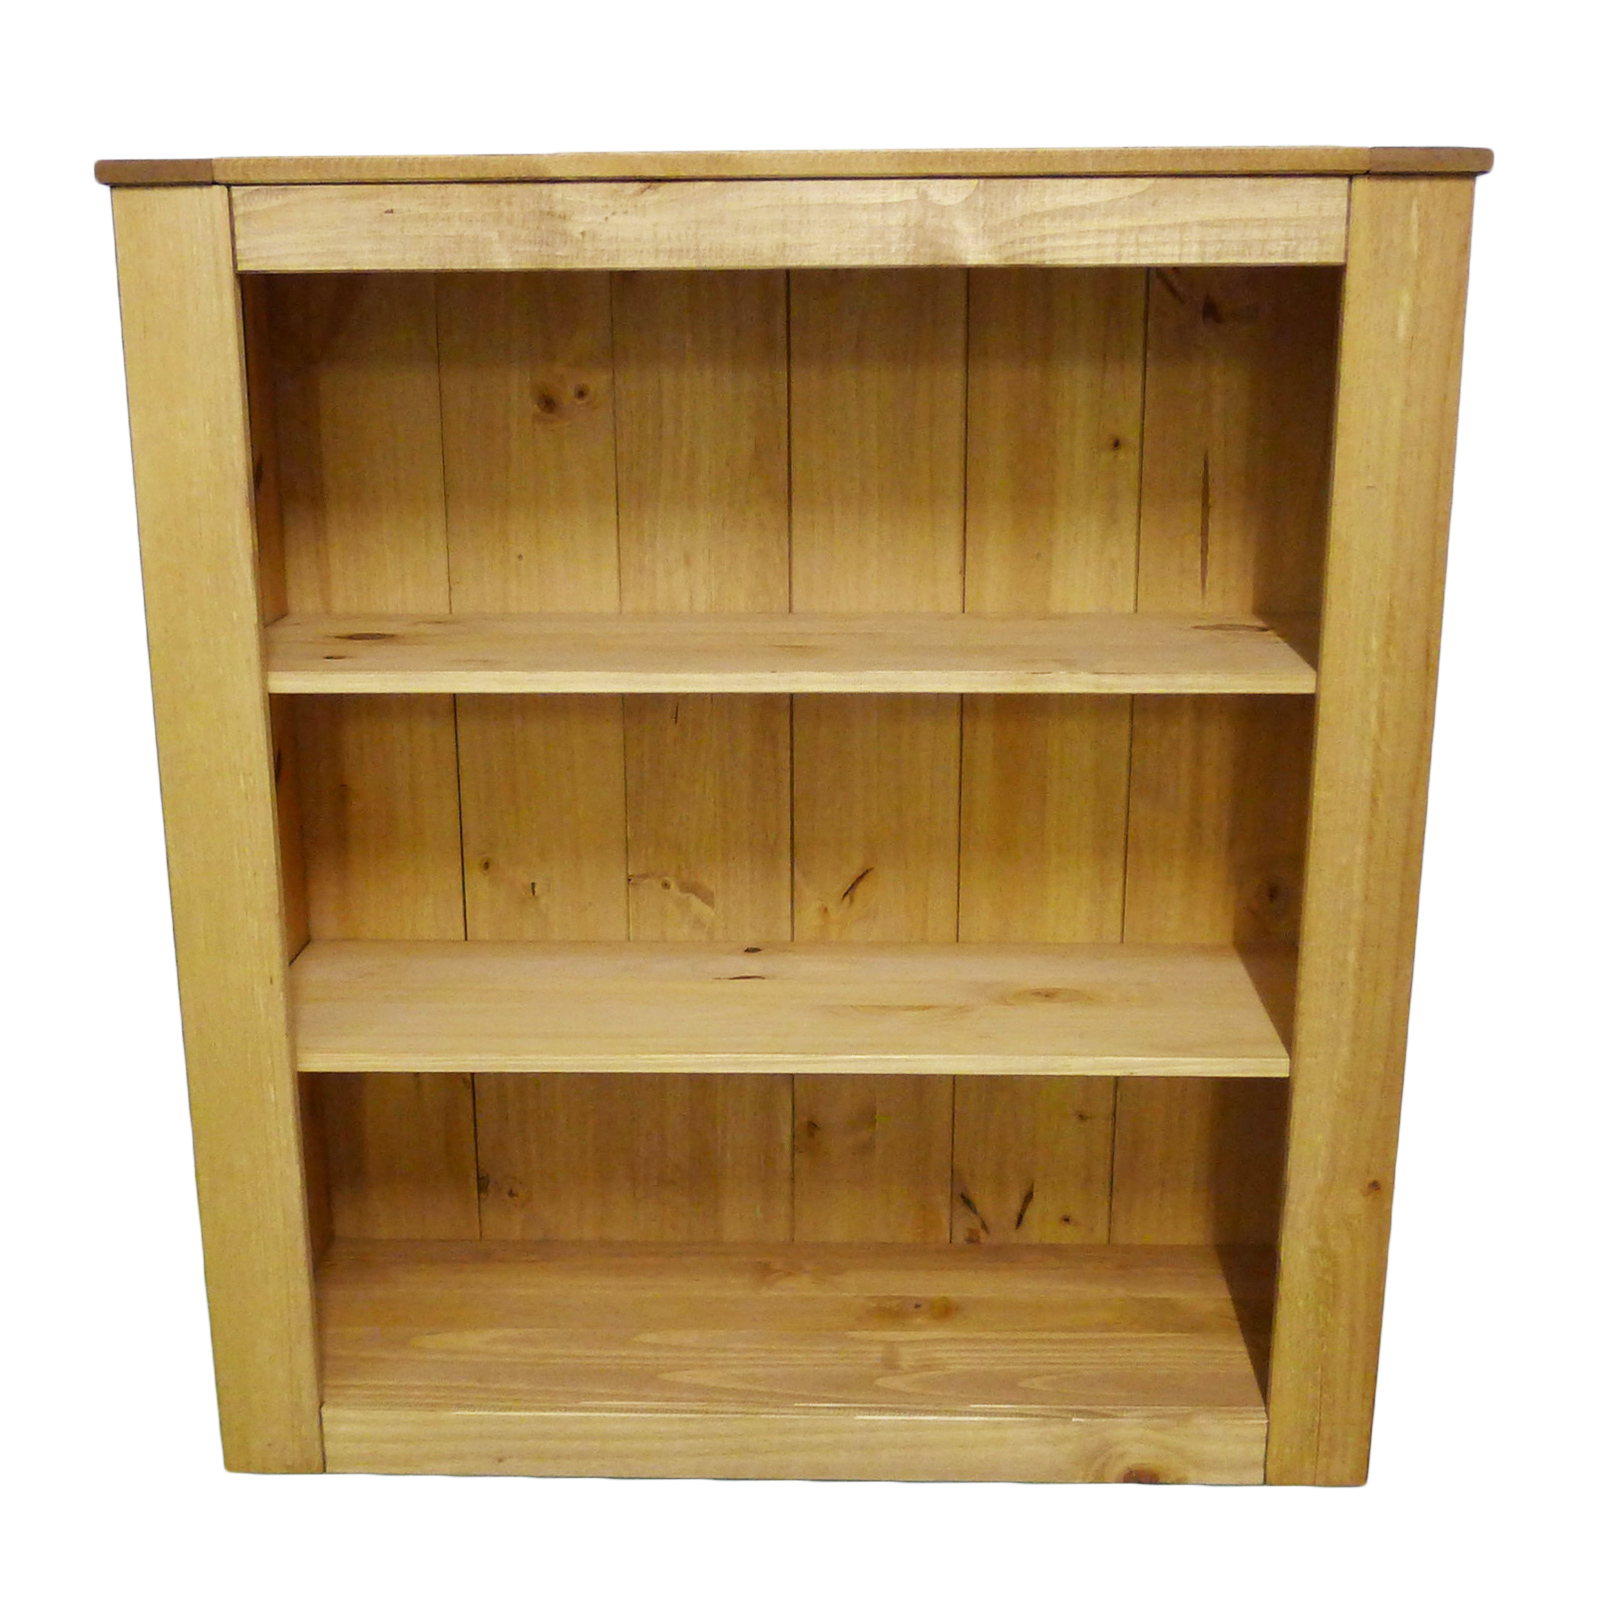 St Albans Solid Pine Bookcase Bookshelf Storage Unit or Dresser Top With Shelves Enlarged Preview